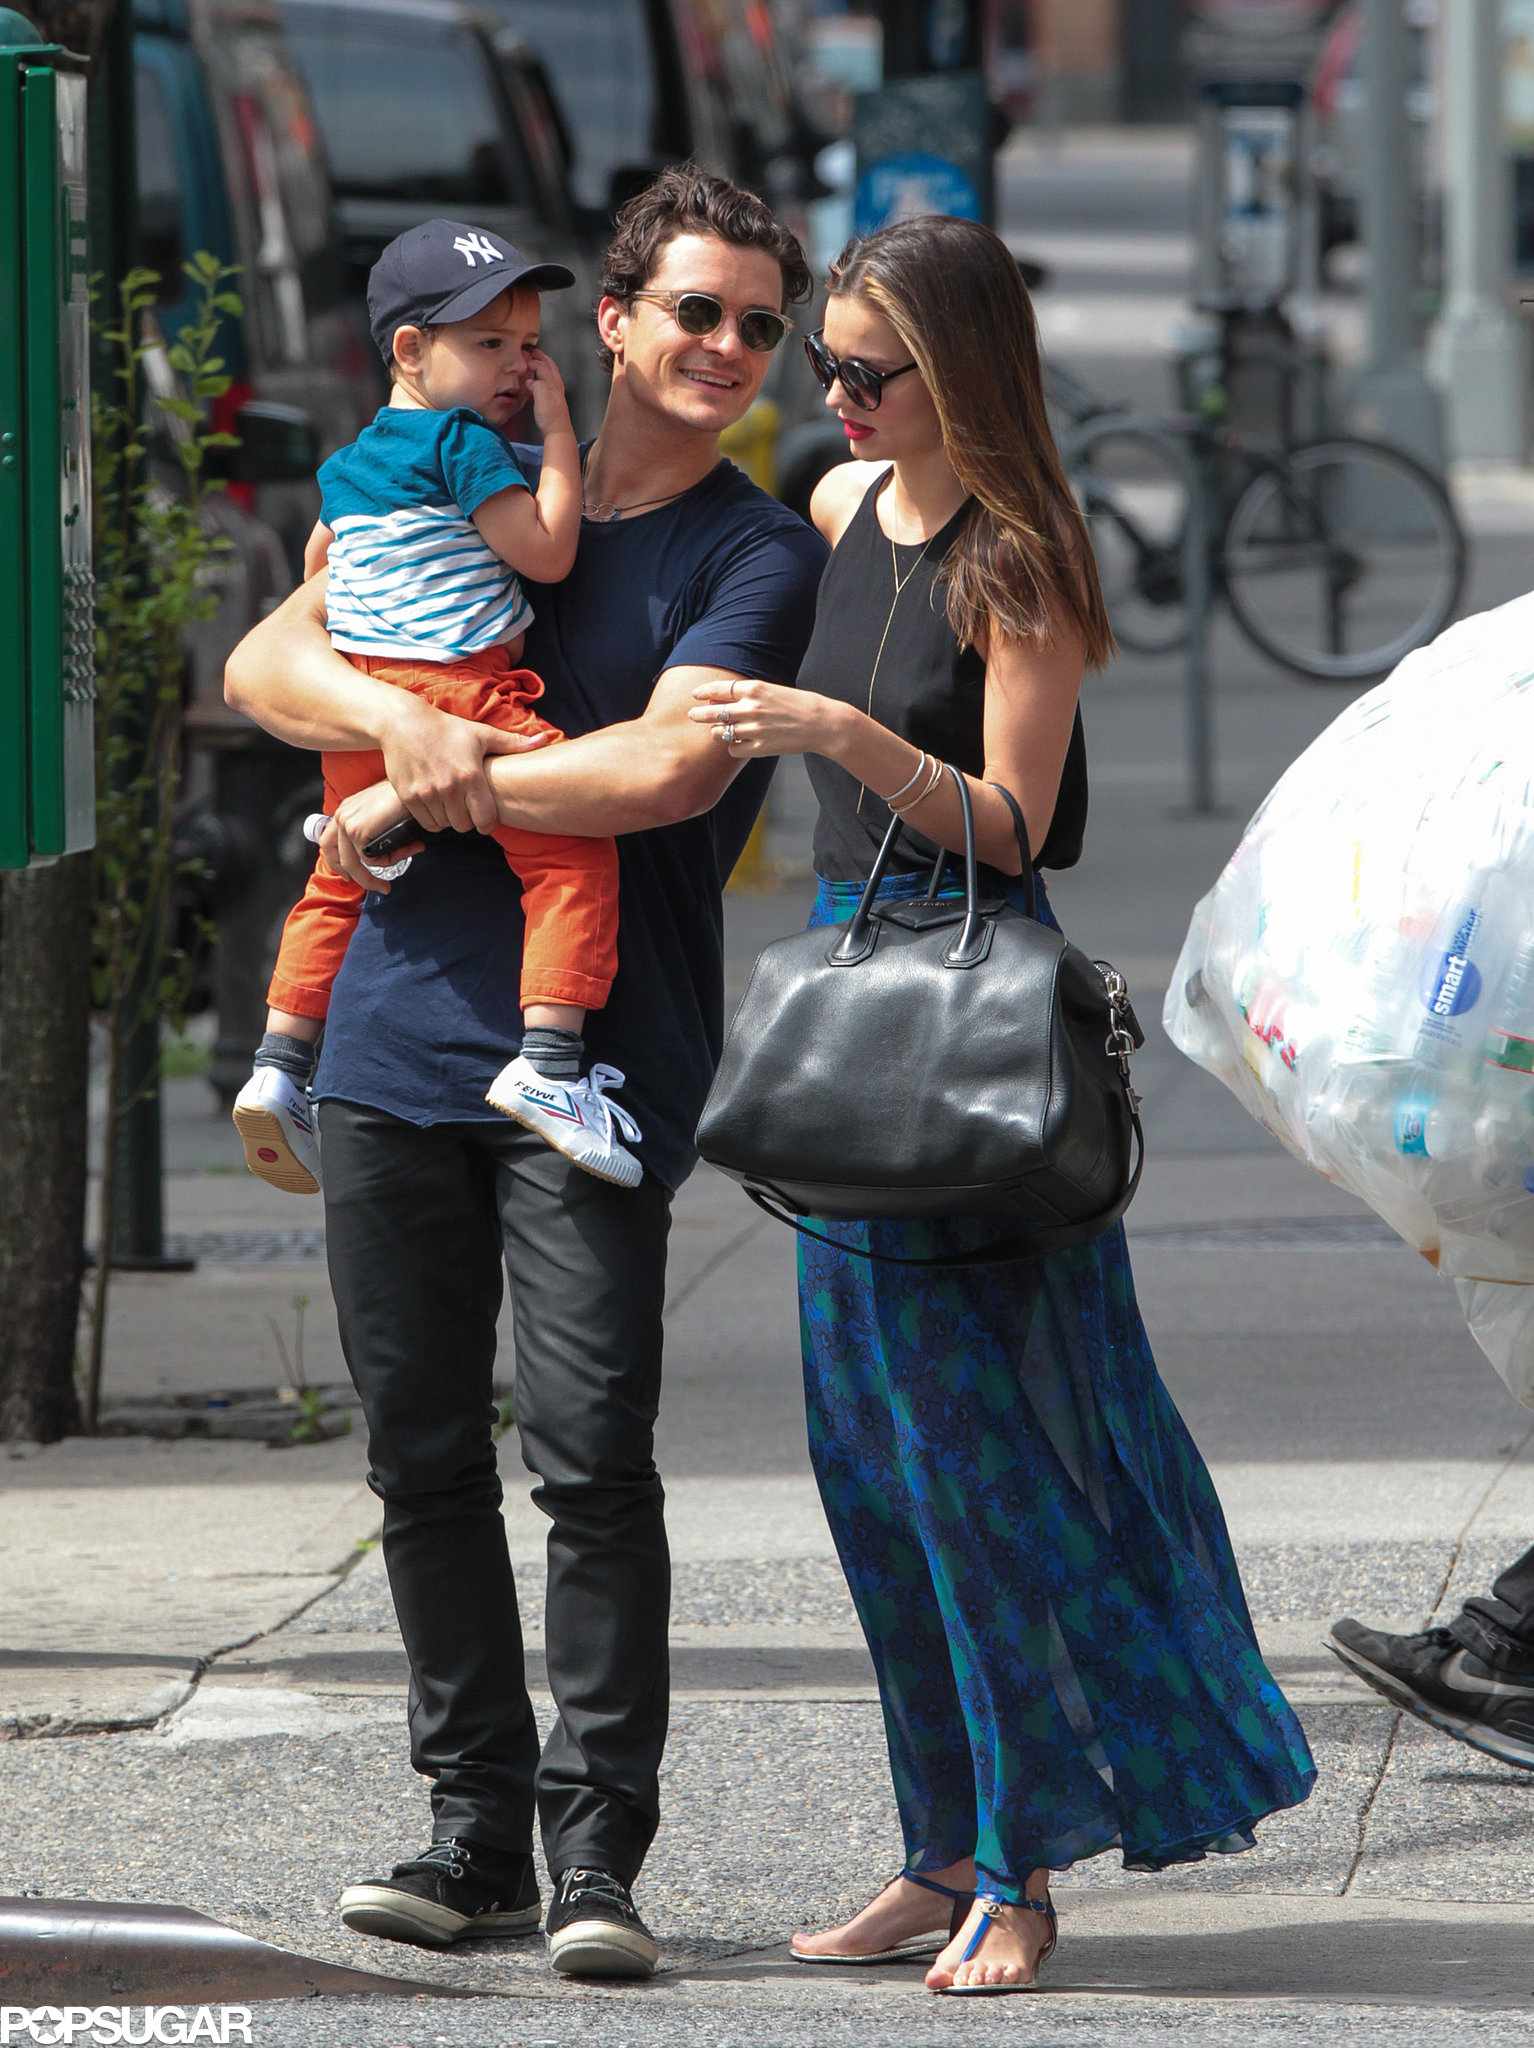 Miranda Kerr wore a maxi skirt while hanging out with Orlando Bloom and their son, Flynn.